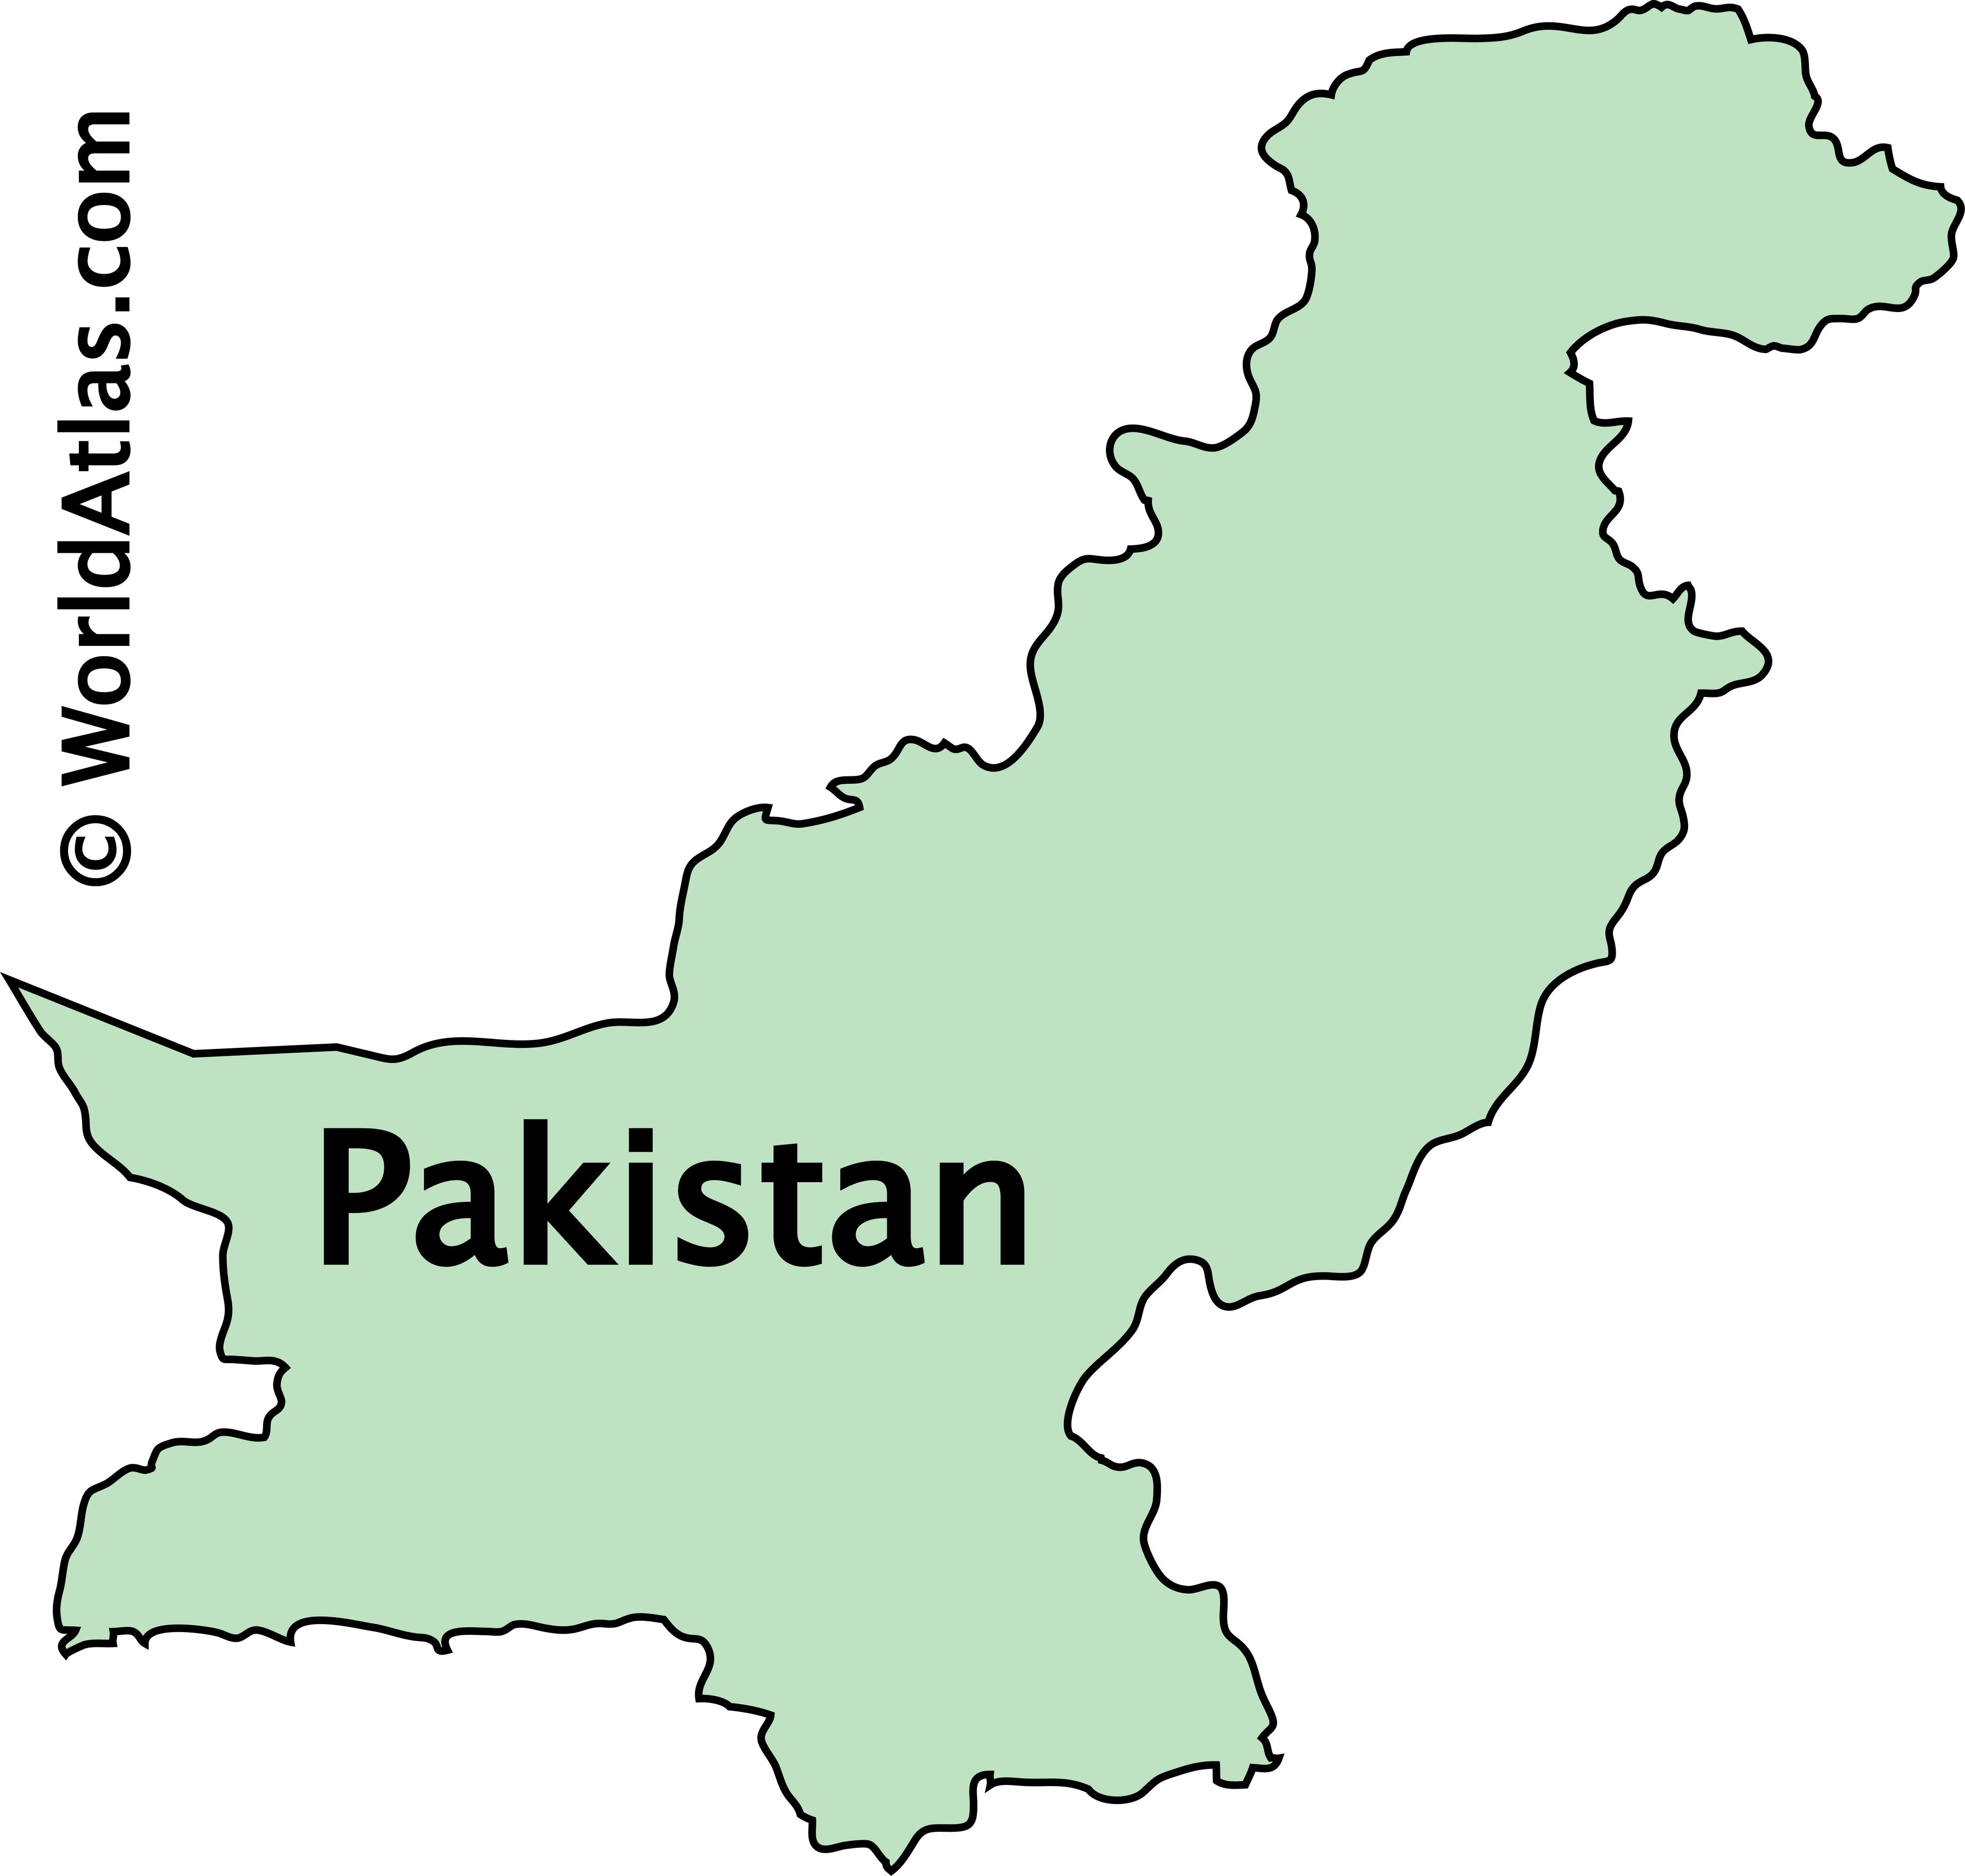 Outline Map of Pakistan